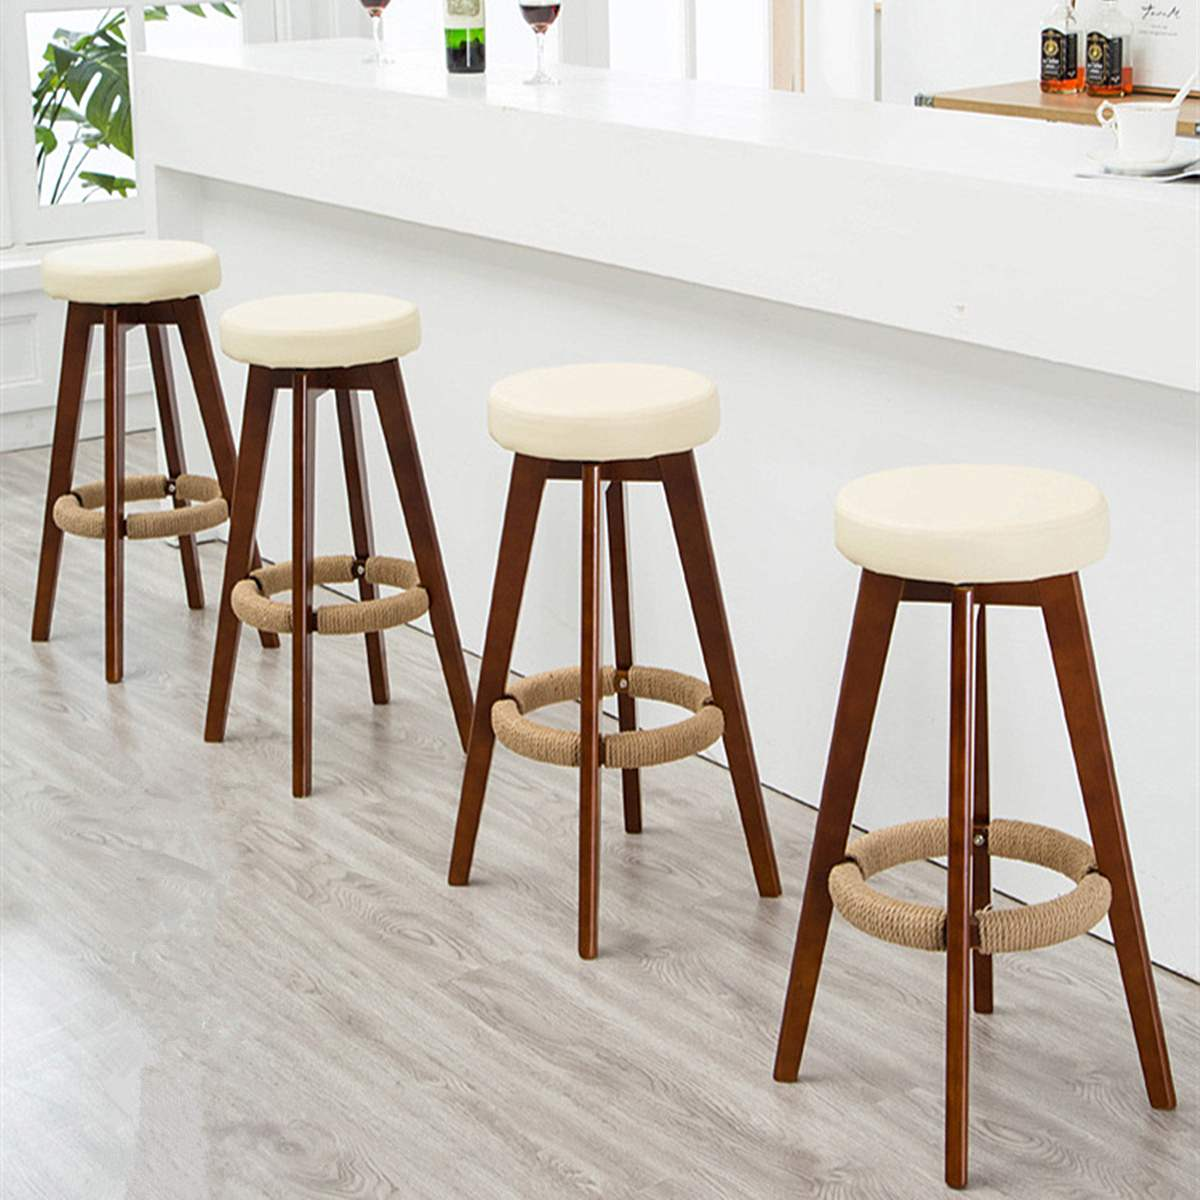 Nordic Swivel Dining Bar Stool Wooden Long Leg PU Chair Industrial Seat Cafe Restaurant Stool Home Bar Furniture 74X48cm